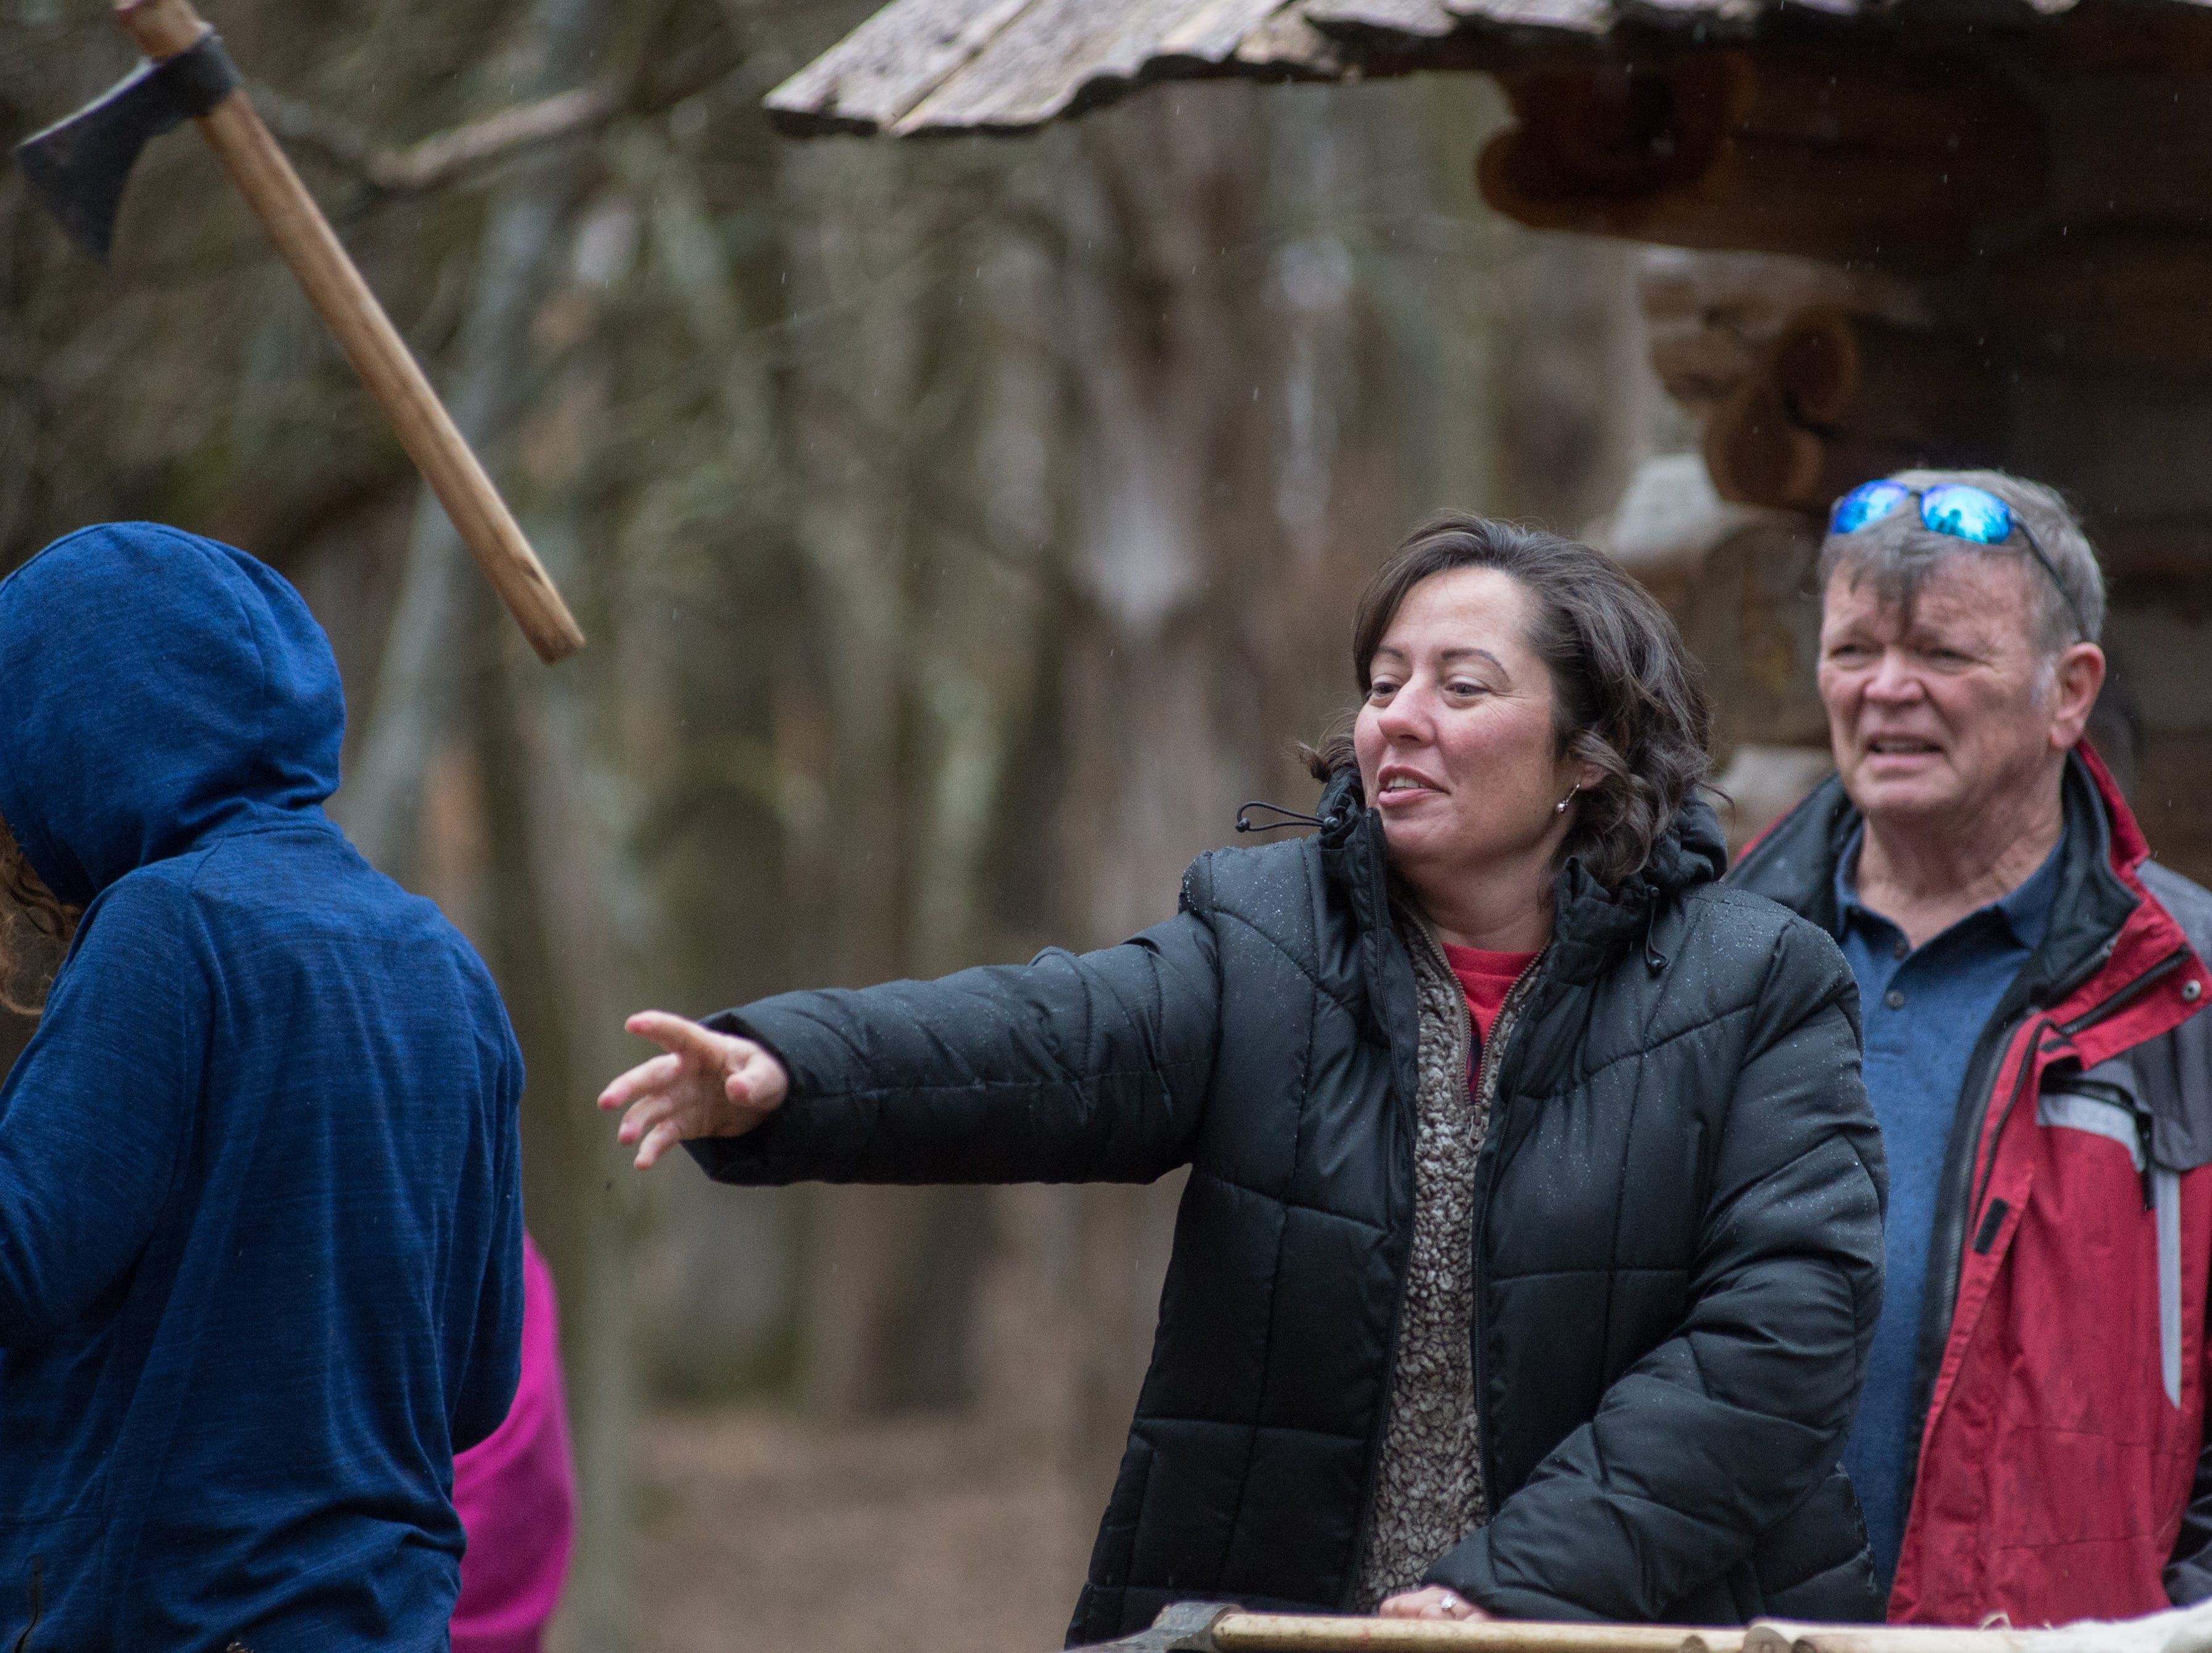 Aundrea Horton lets it fly during a Tomahawk Throwing for Beginners event hosted by Middle Tennessee History Coalition at Bledsoe Creek State Park on Saturday, Jan. 12.